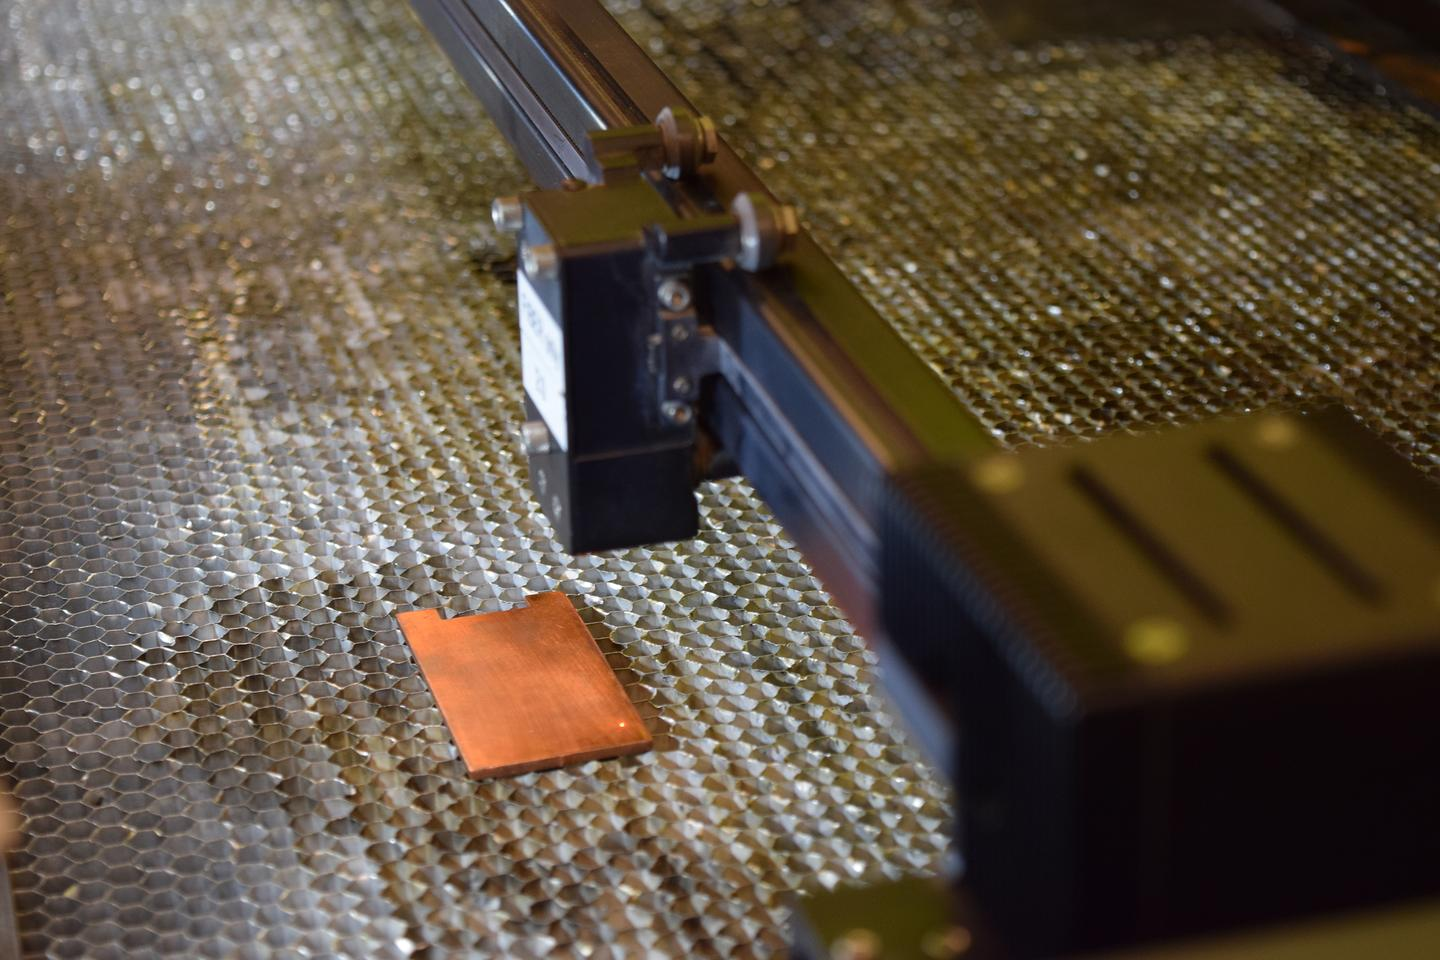 A laser is used to treat a copper sample